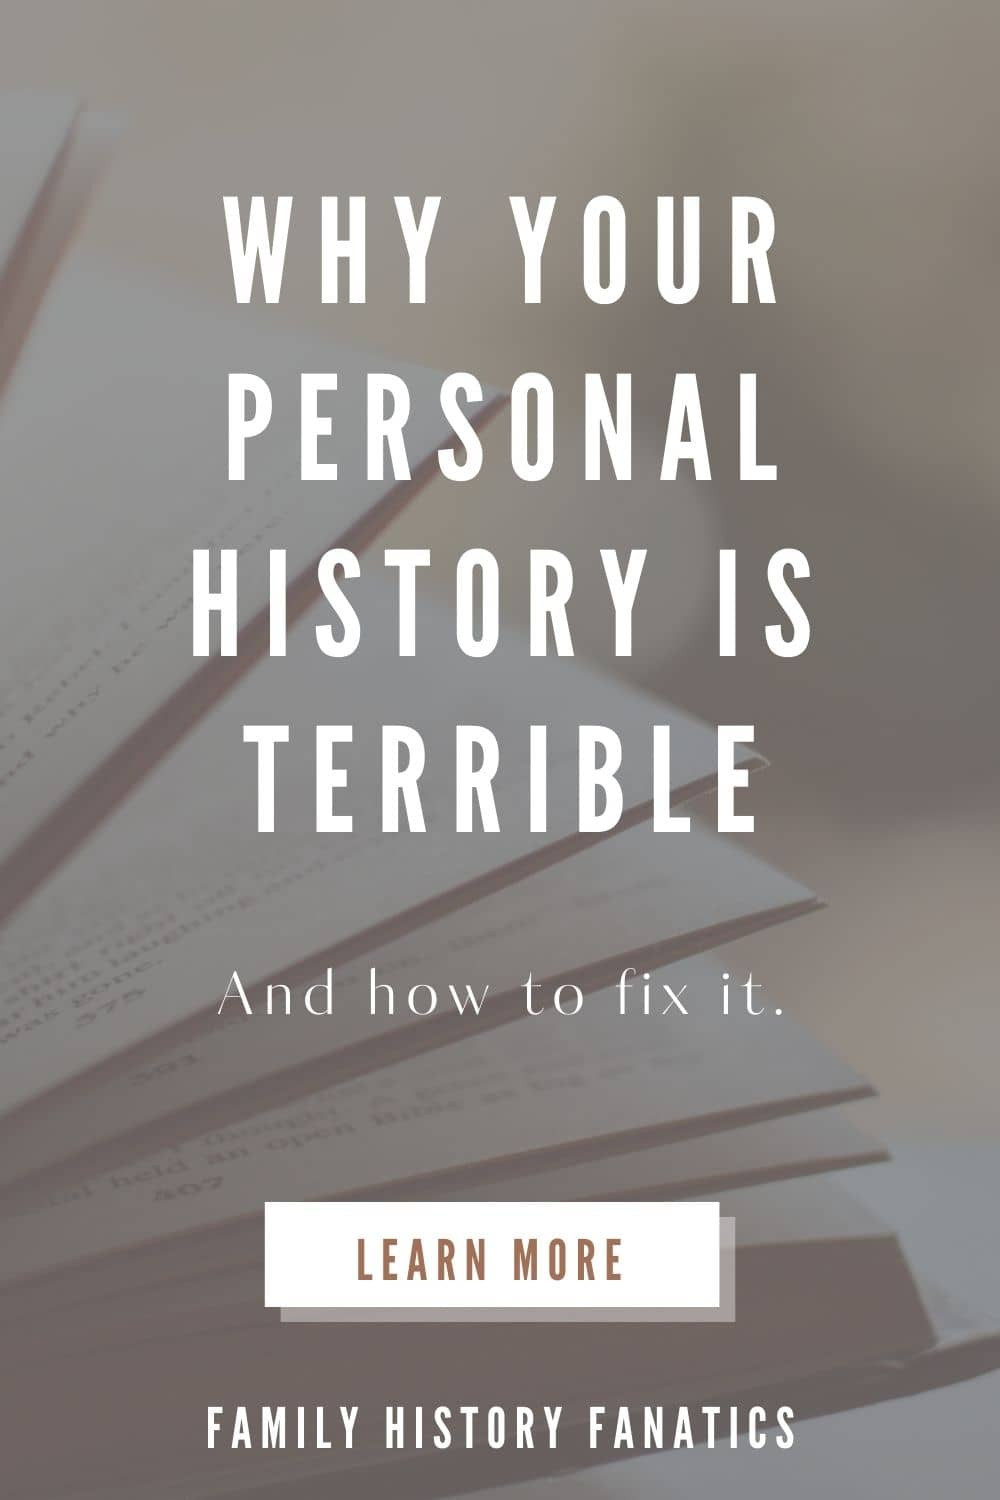 Book with text overlay of Why you personal history is terrible and how to fix it.